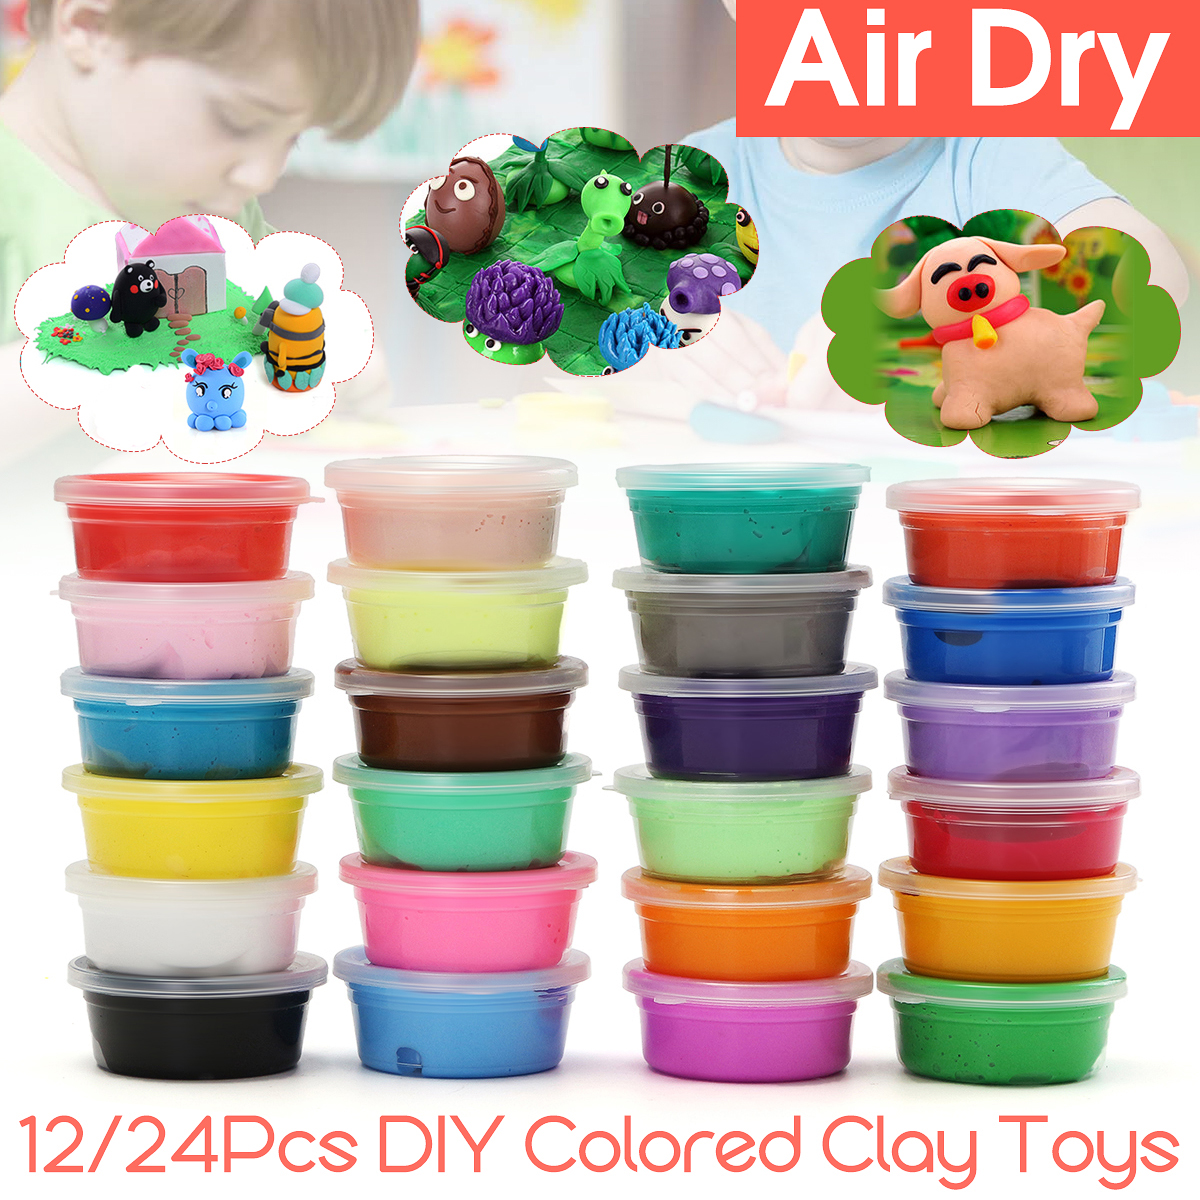 Slime Toys Colored Clay Air drying claytool Soft Polymer Eco-friendly Material Modelling Clay Educational toy